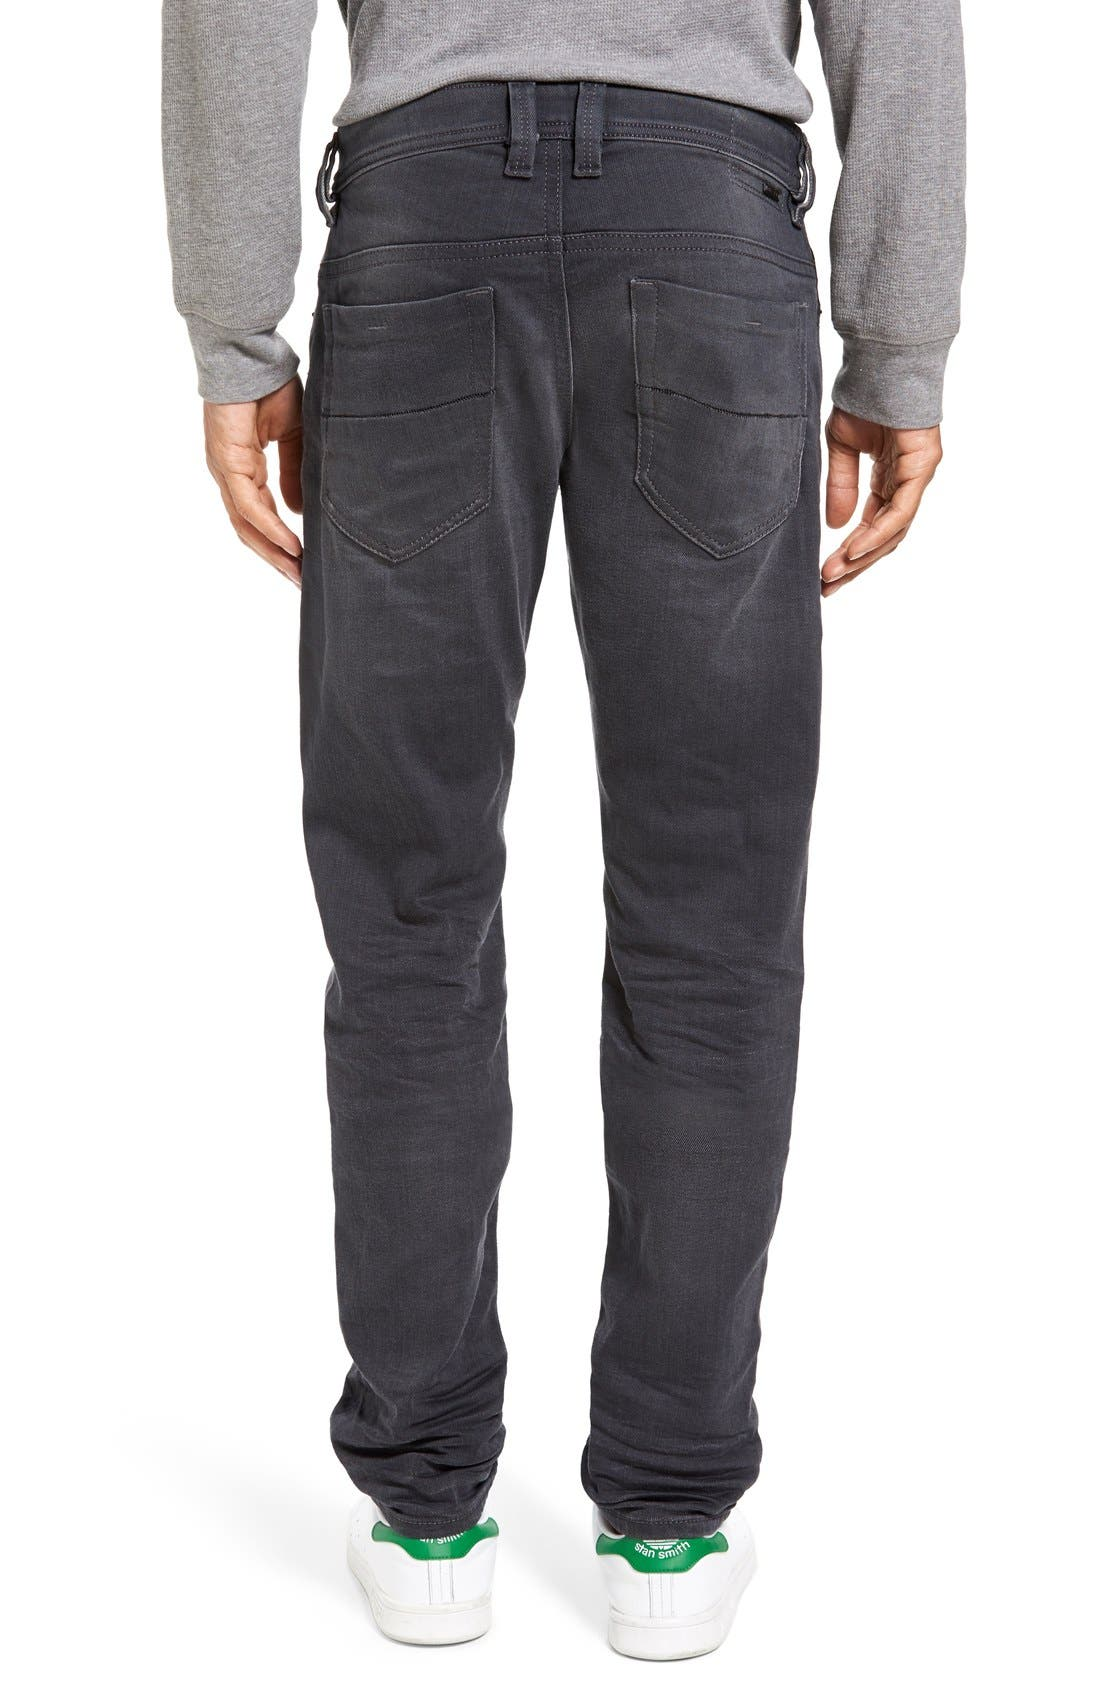 Thommer Slim Fit Jeans,                             Alternate thumbnail 2, color,                             859X